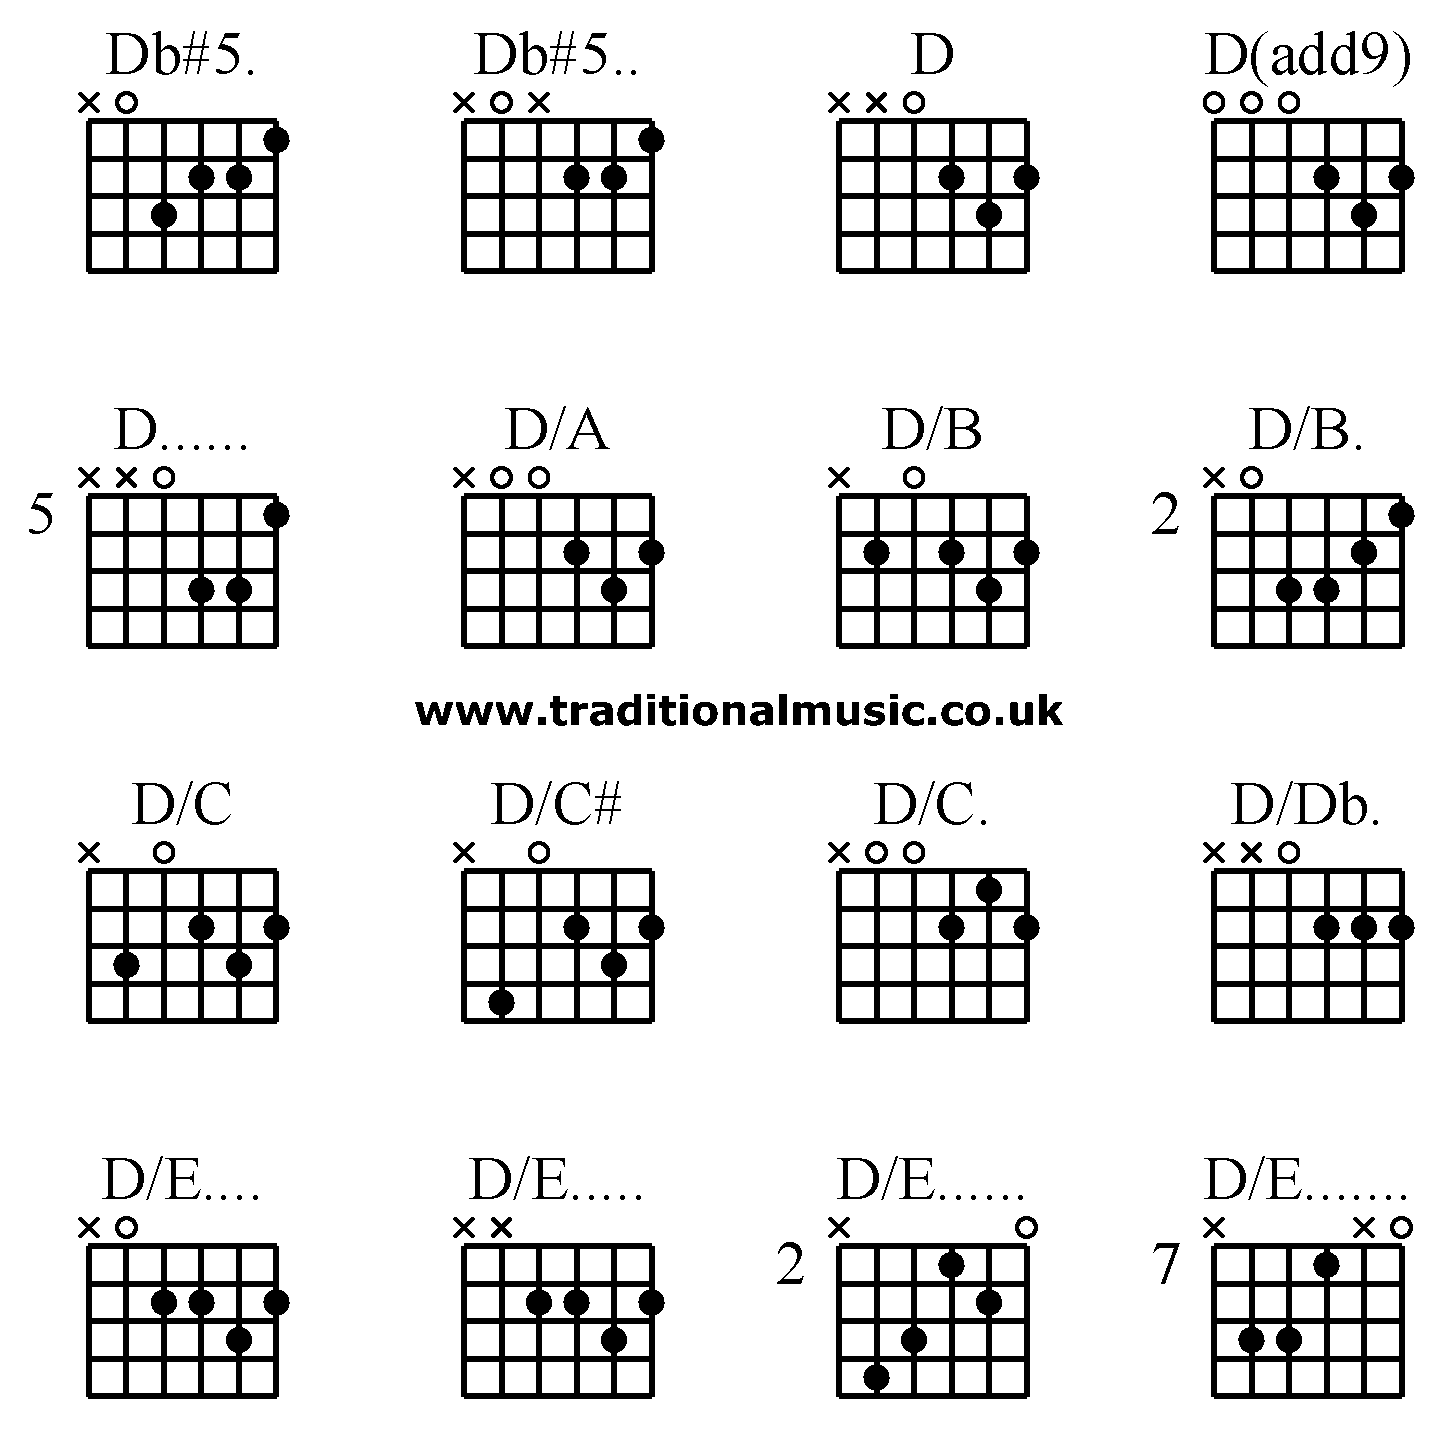 guitar chords advanced db 5 db 5 d d add9 d d a d b d b d c d